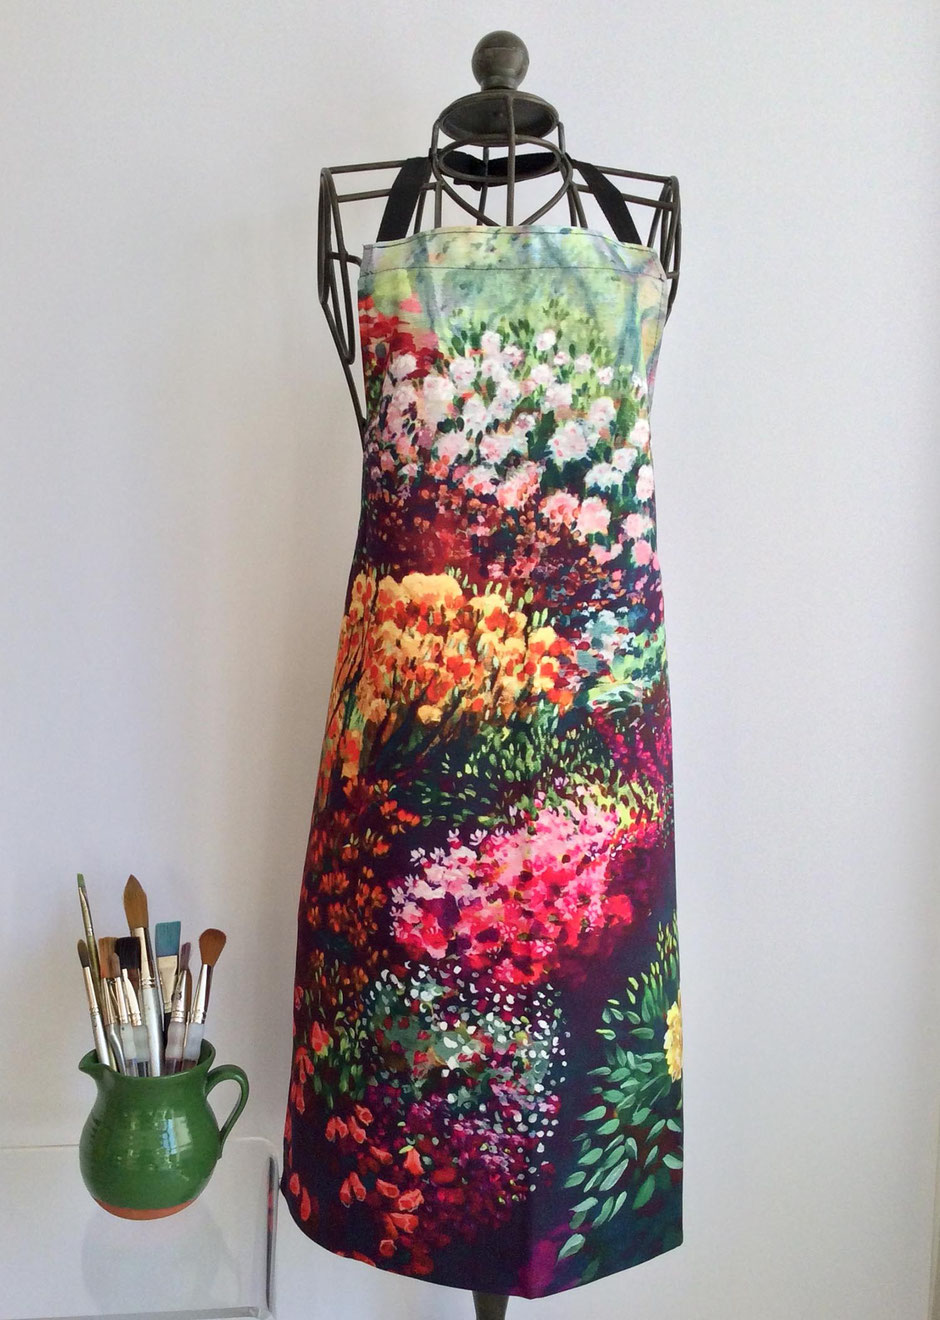 colourful garden cotton apron